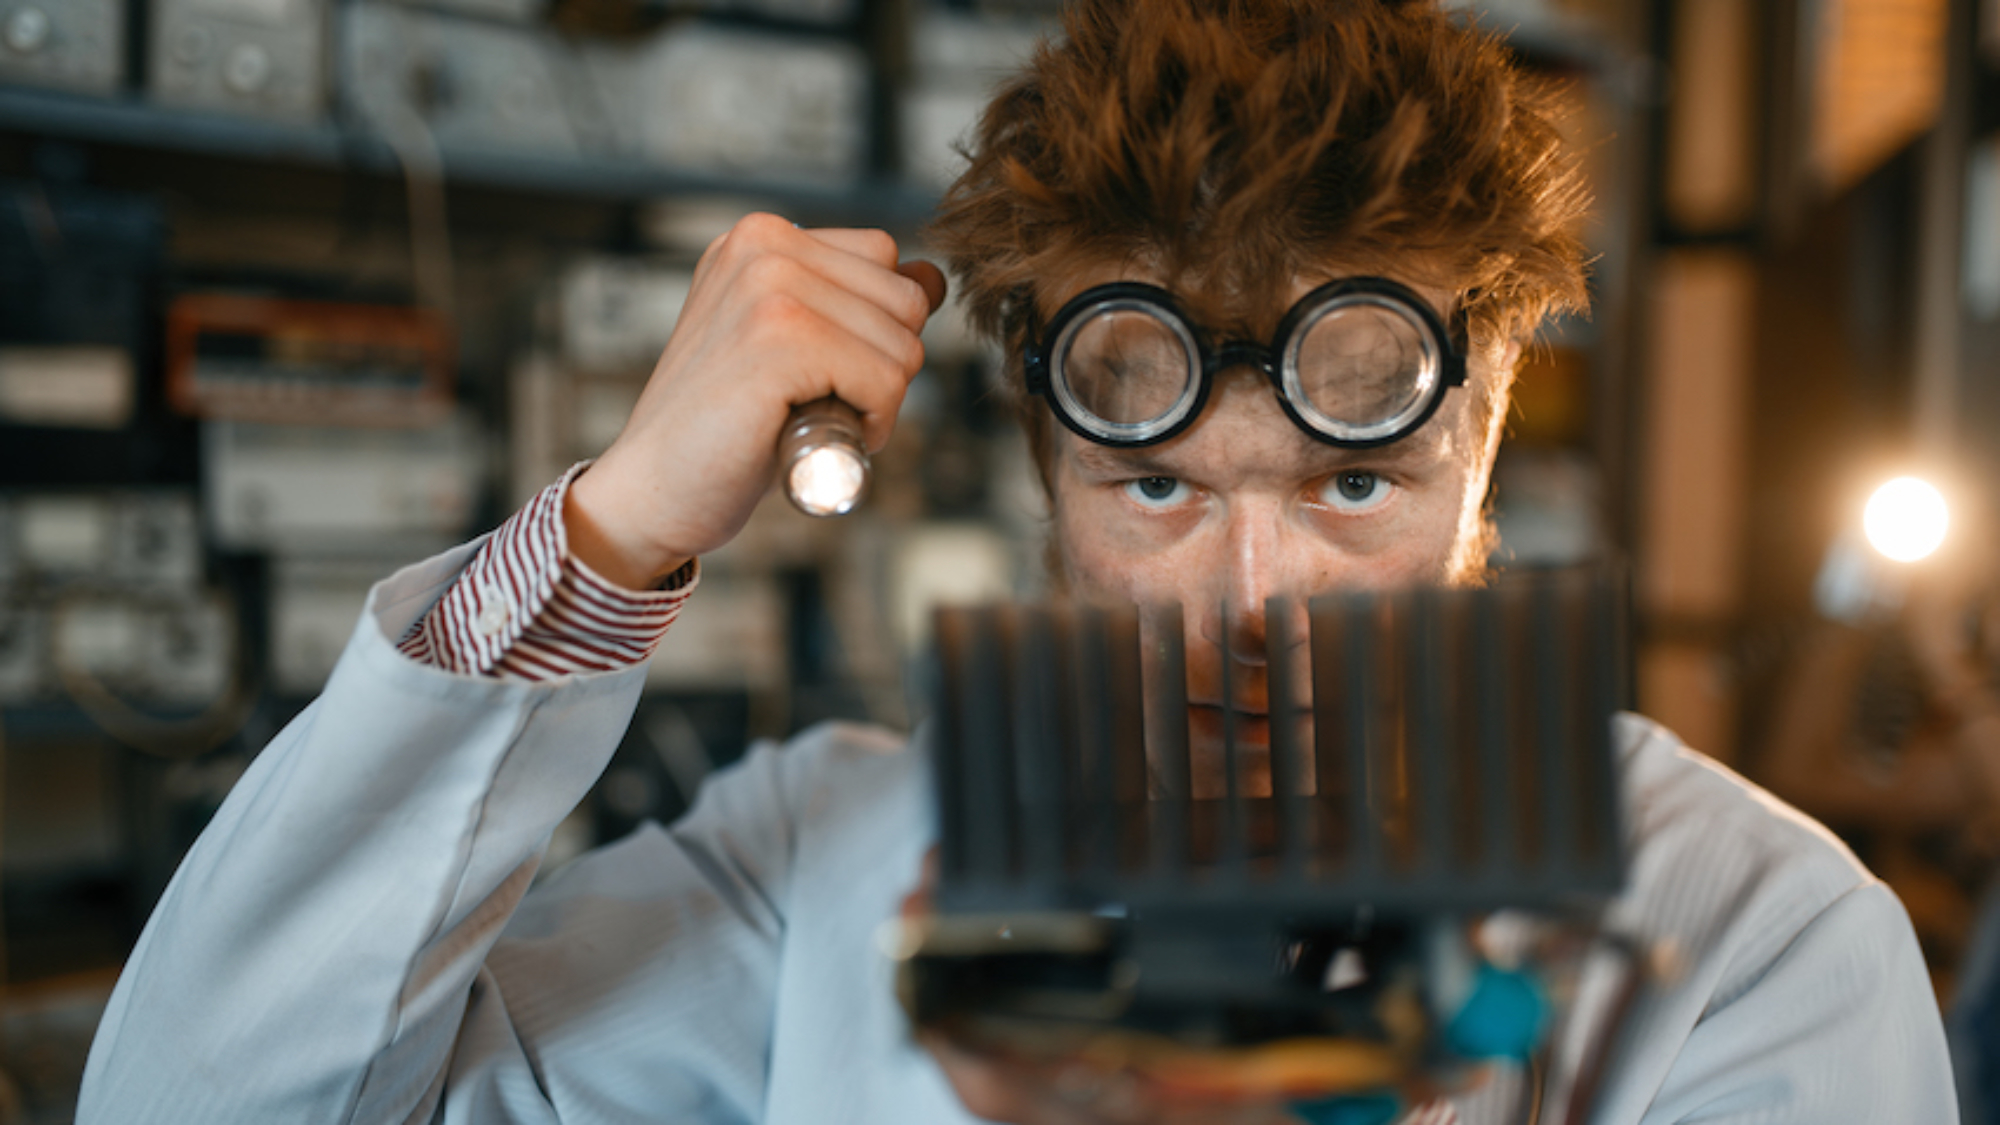 Strange engineer examines the cooling radiator, test in laboratory. Electrical testing tools on background. Lab equipment, engineering workshop